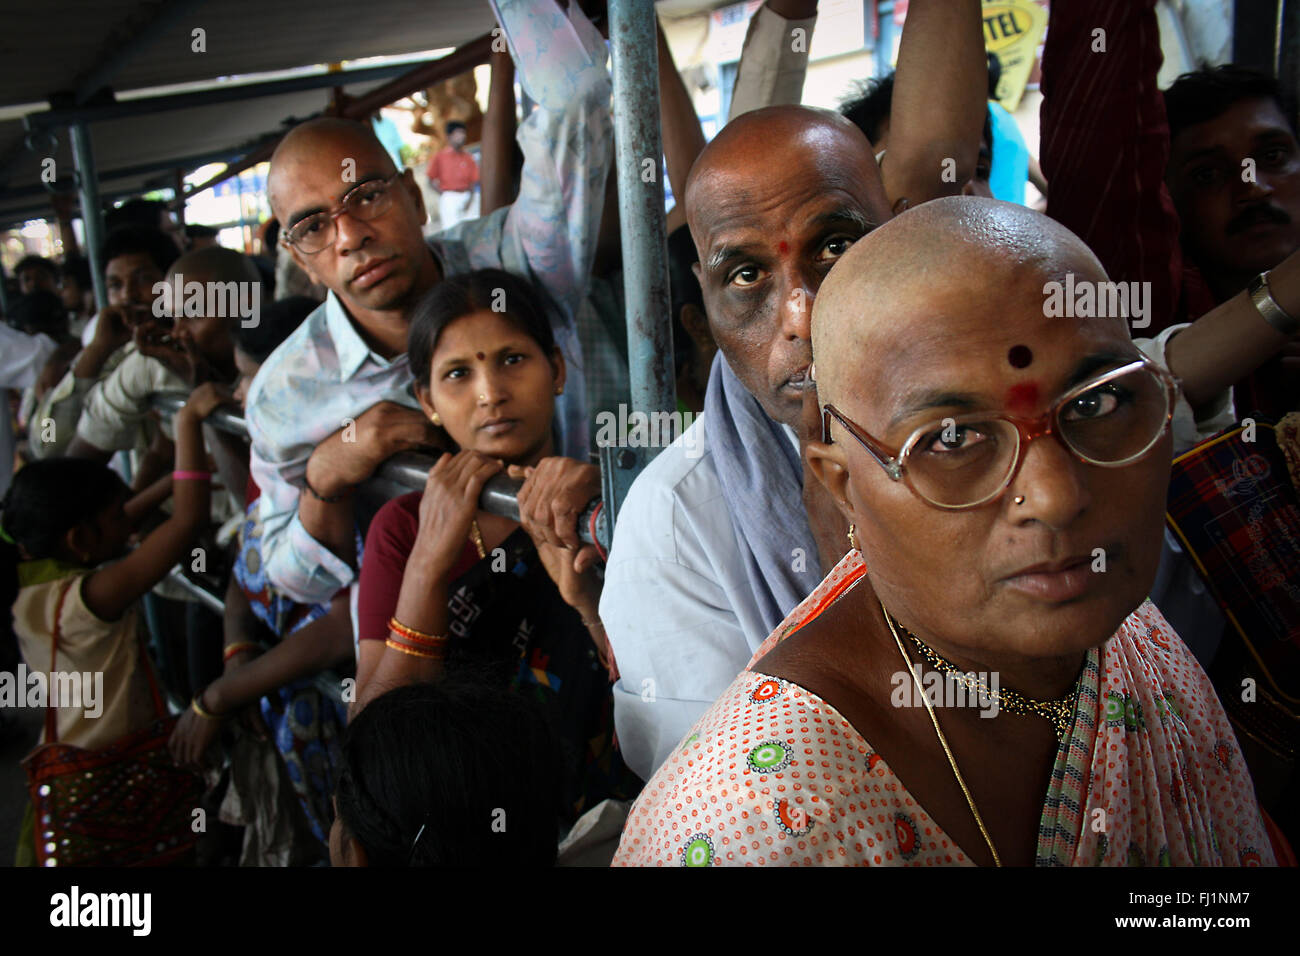 Hindu pilgrims queueing with their head shaved as offering made to god when visiting worldfamous pilgrimage place - Stock Image